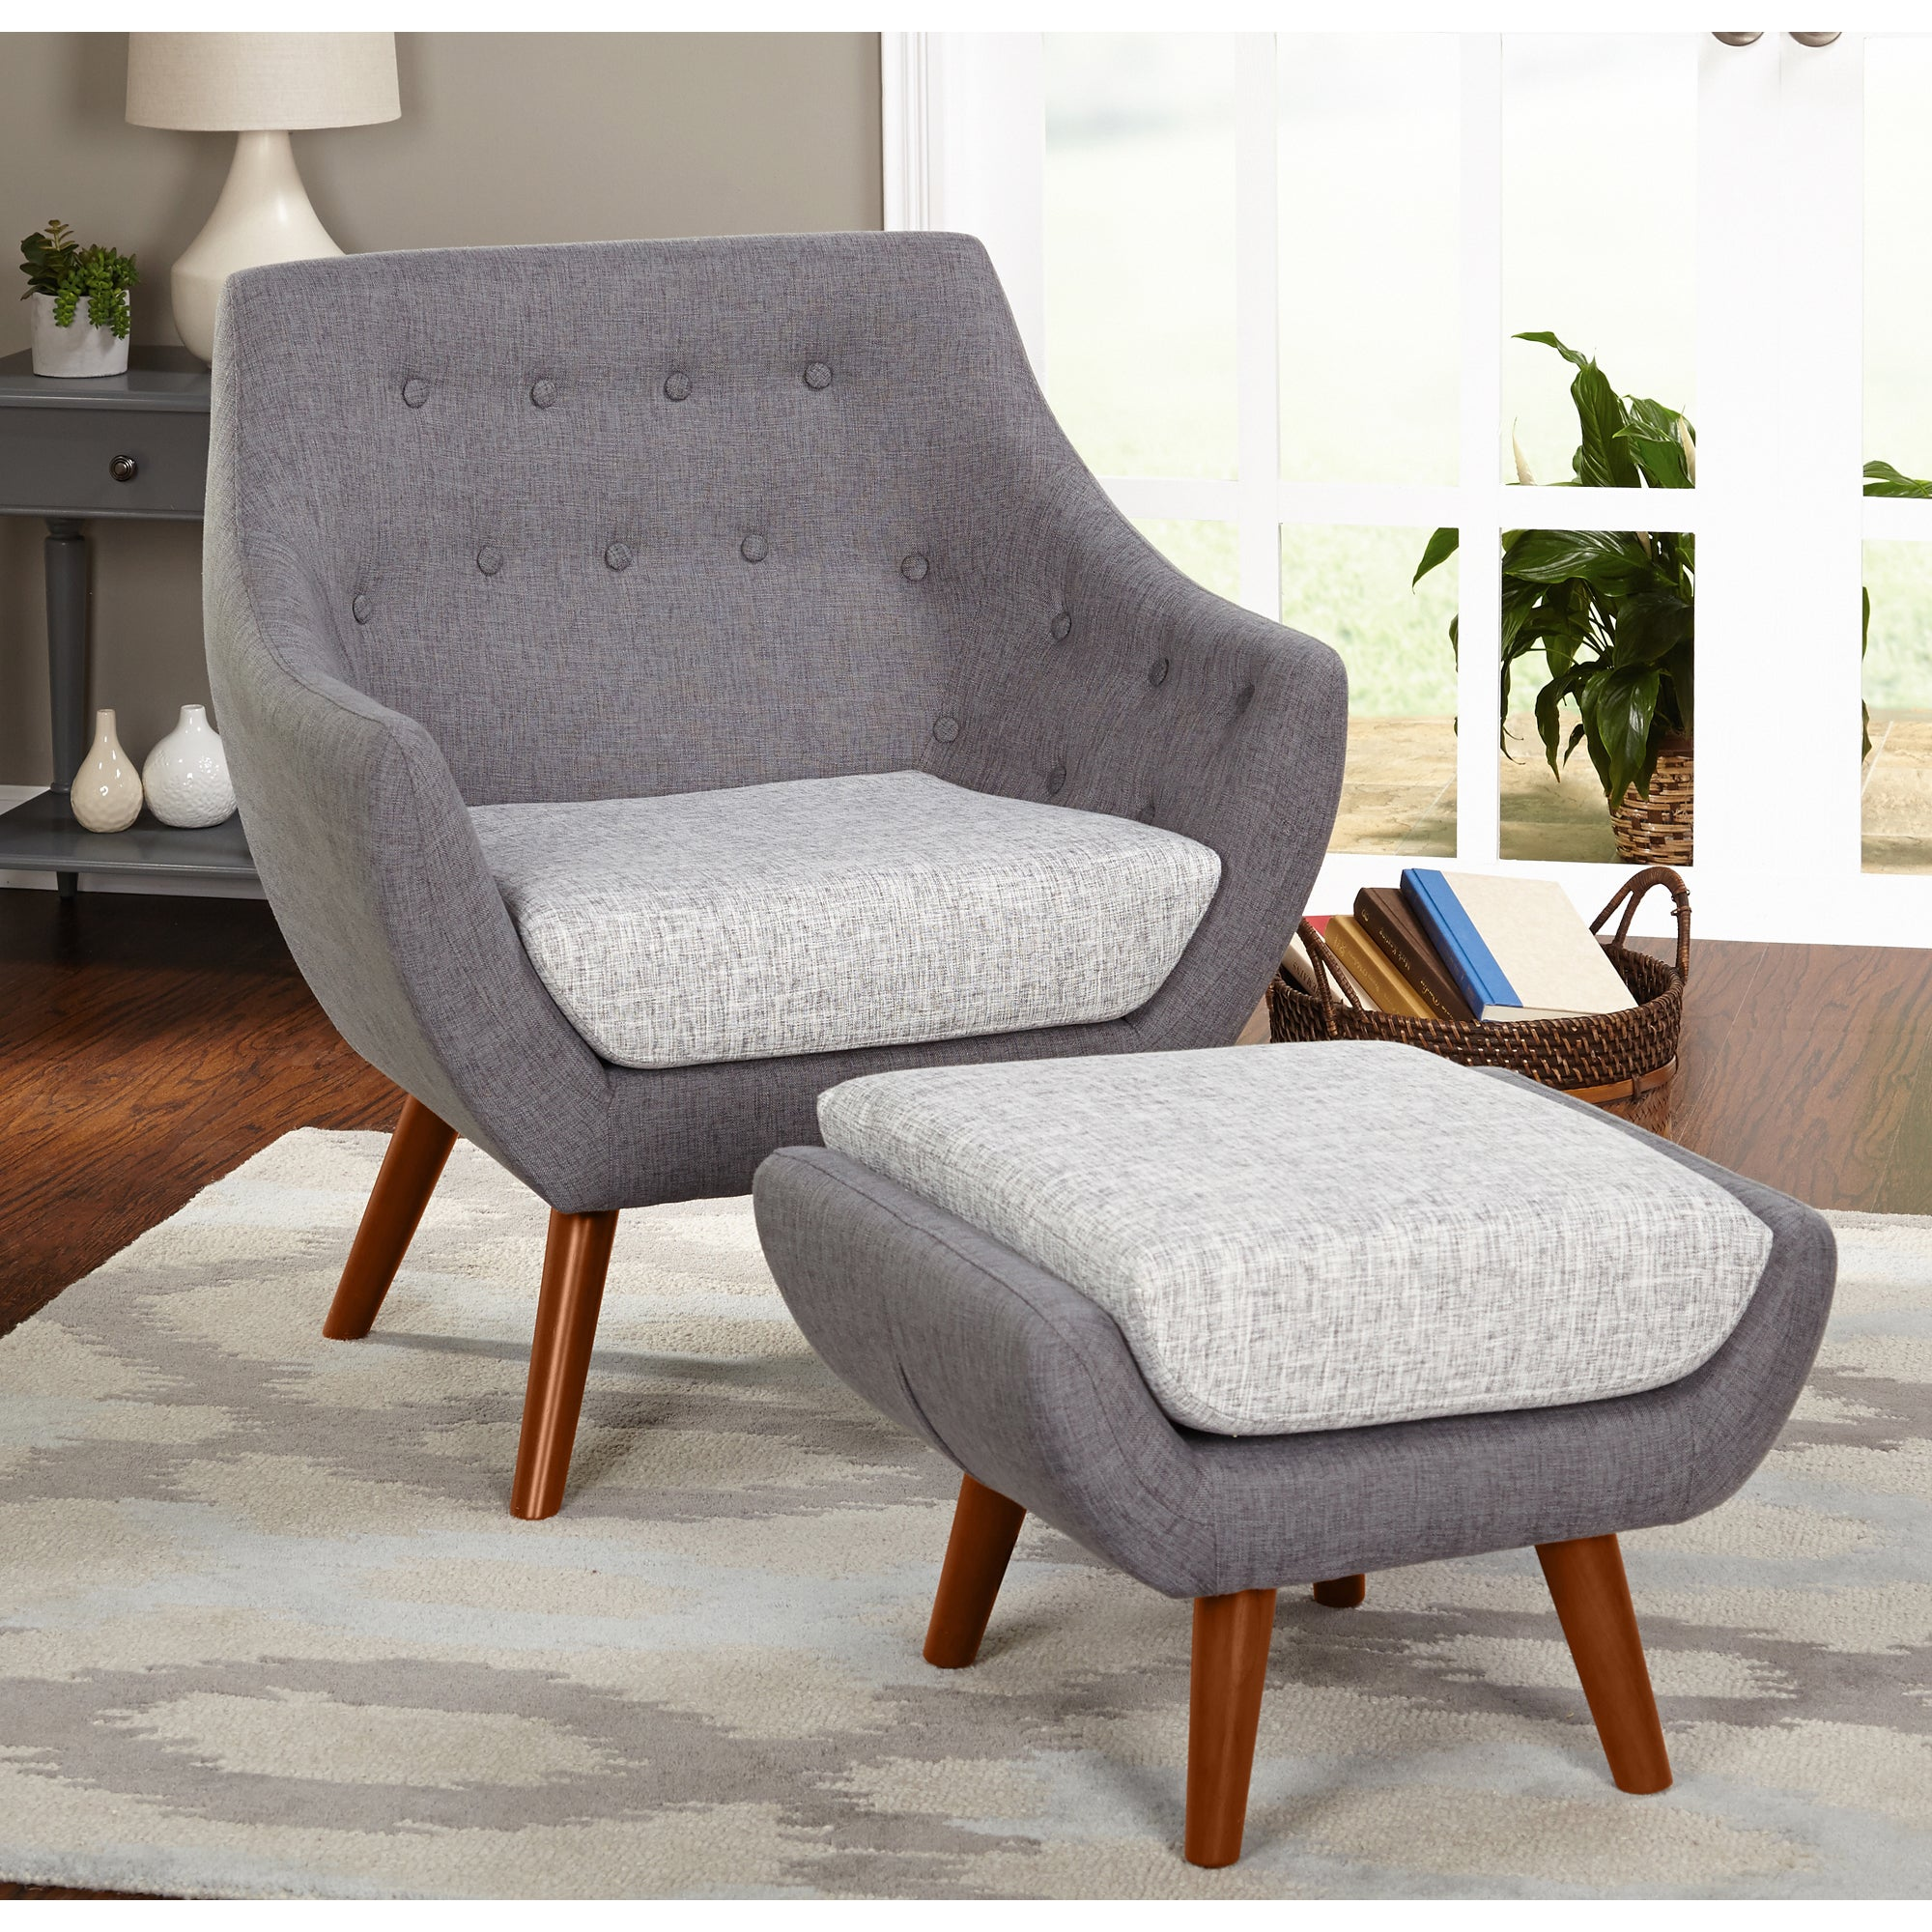 modern club of century overstock by shipping chair ottoman today knight garden chairs and free christopher sawyer fabric set ottomans mid product home